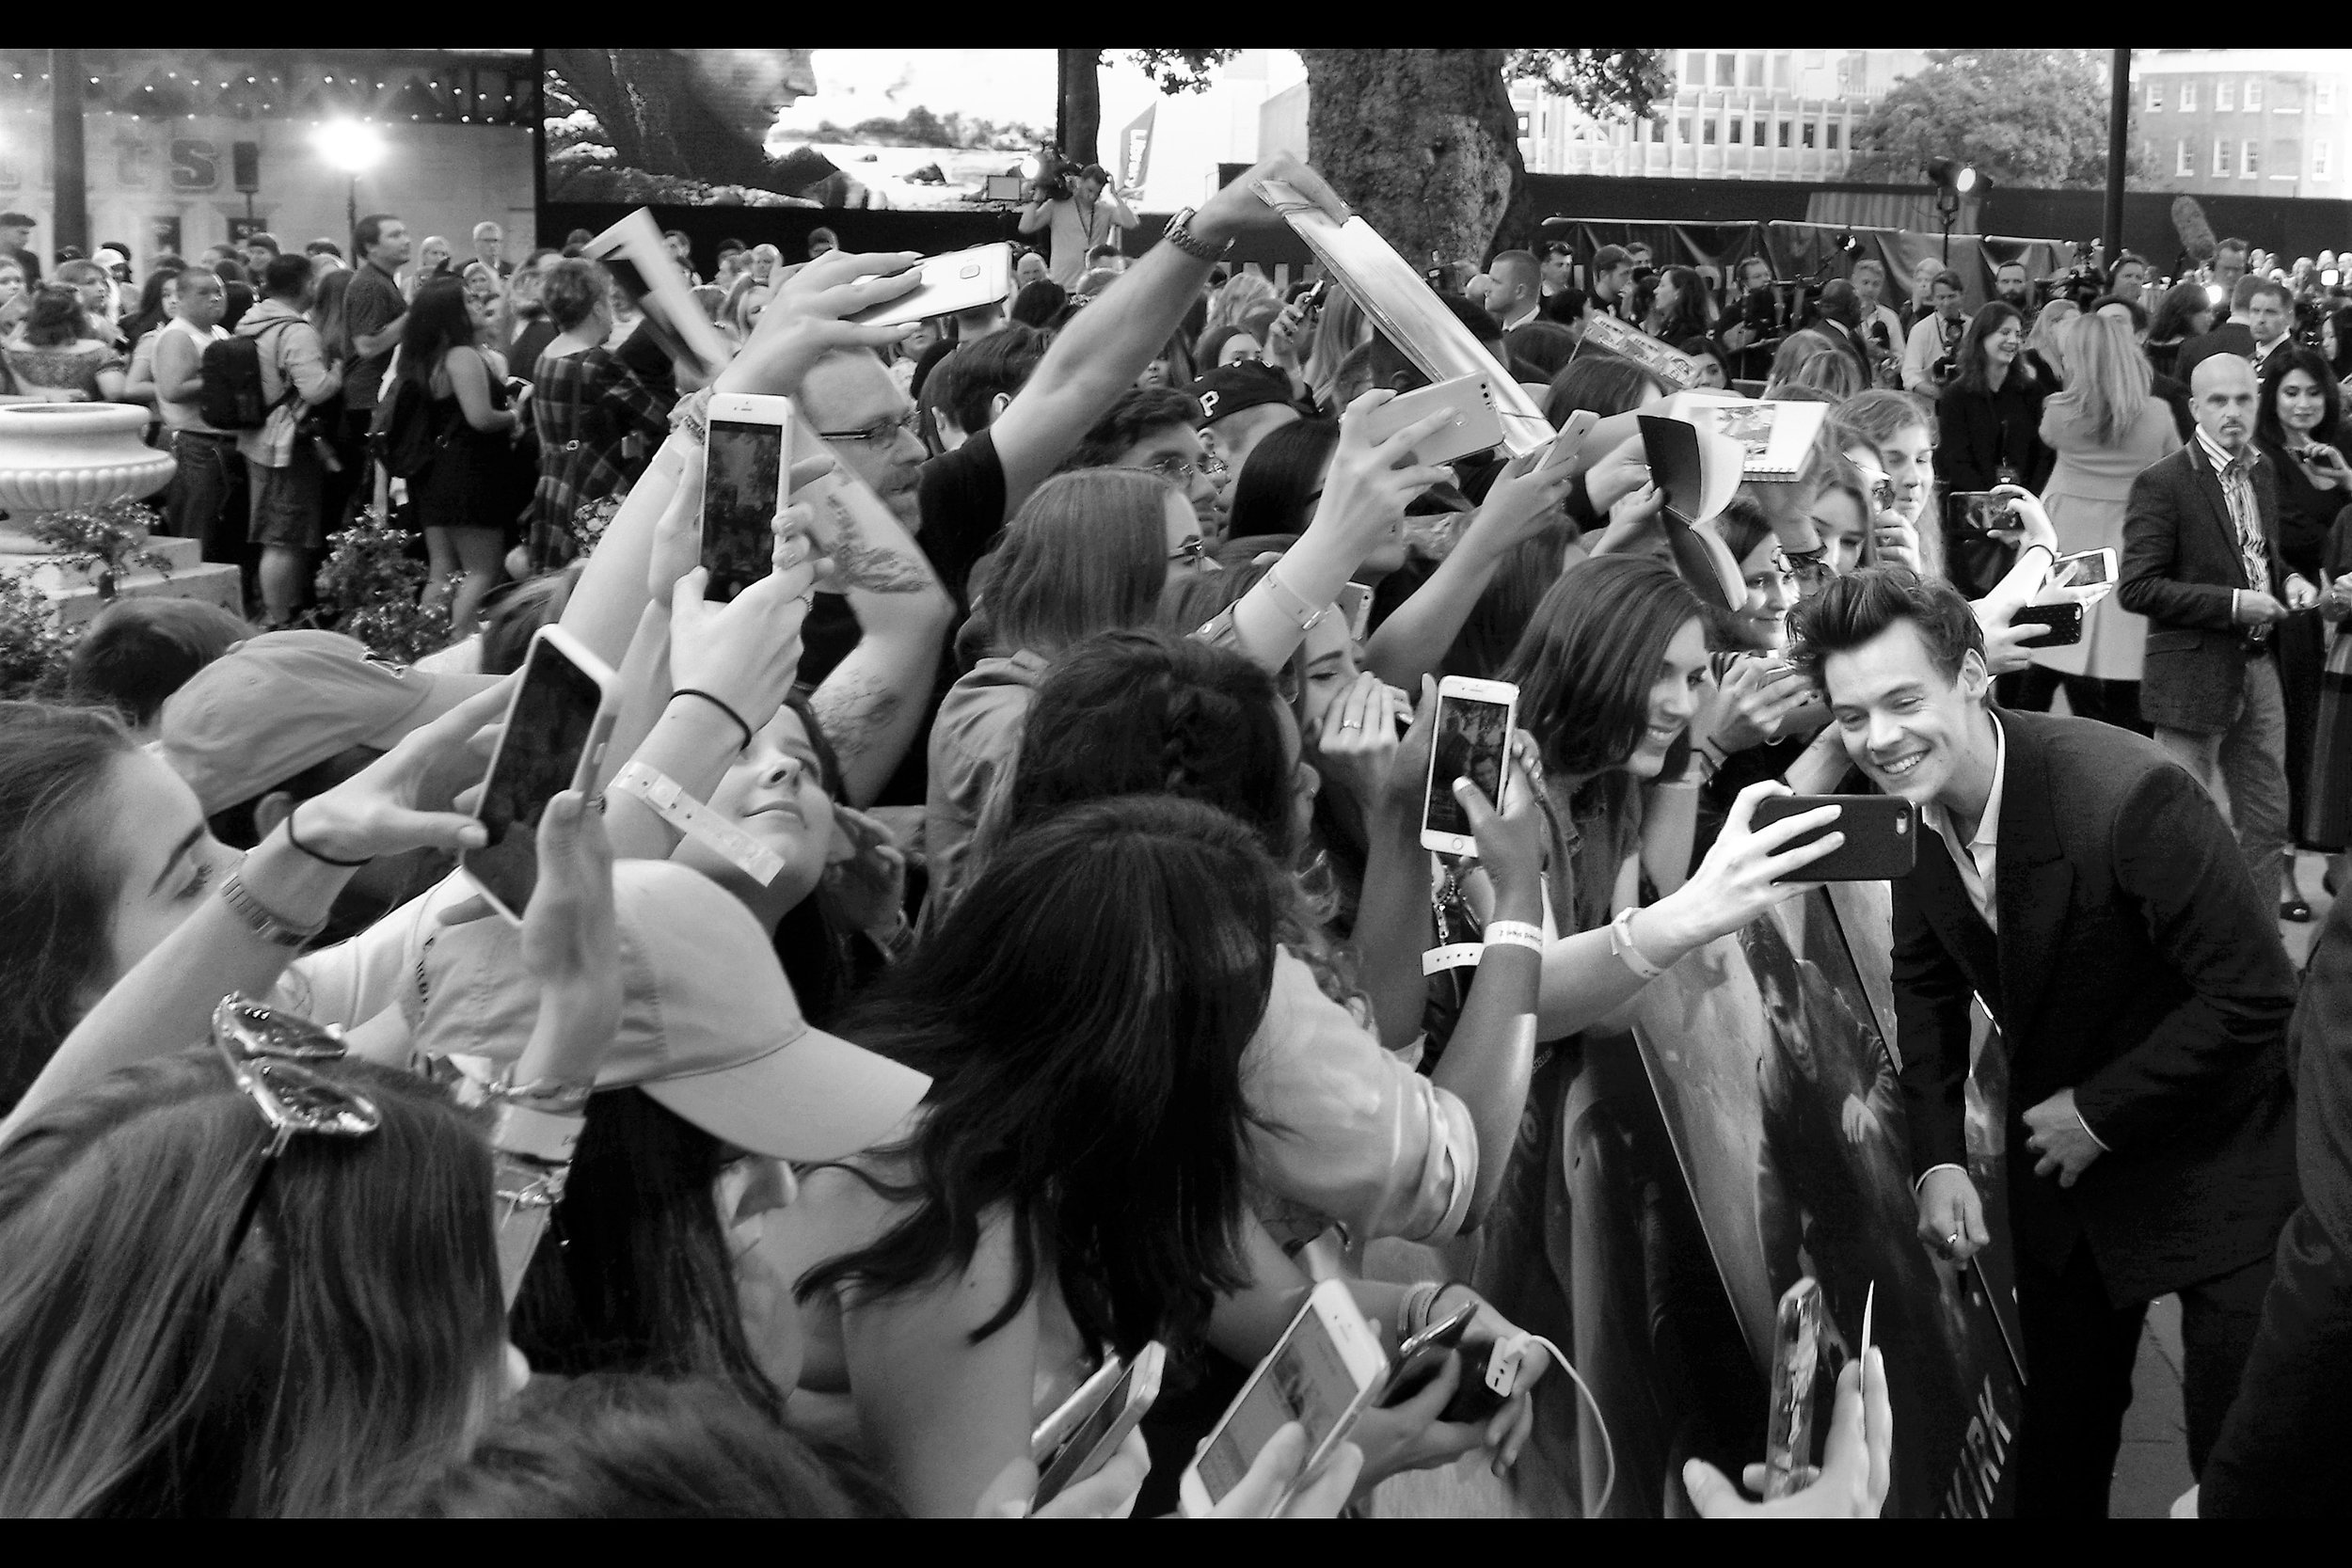 Fortunately the likelihood of rioting that would still probably be going on right now if he didn't, Harry Styles did indeed sign and pose for selfies for what seemed like the majority of the assembled crowd.